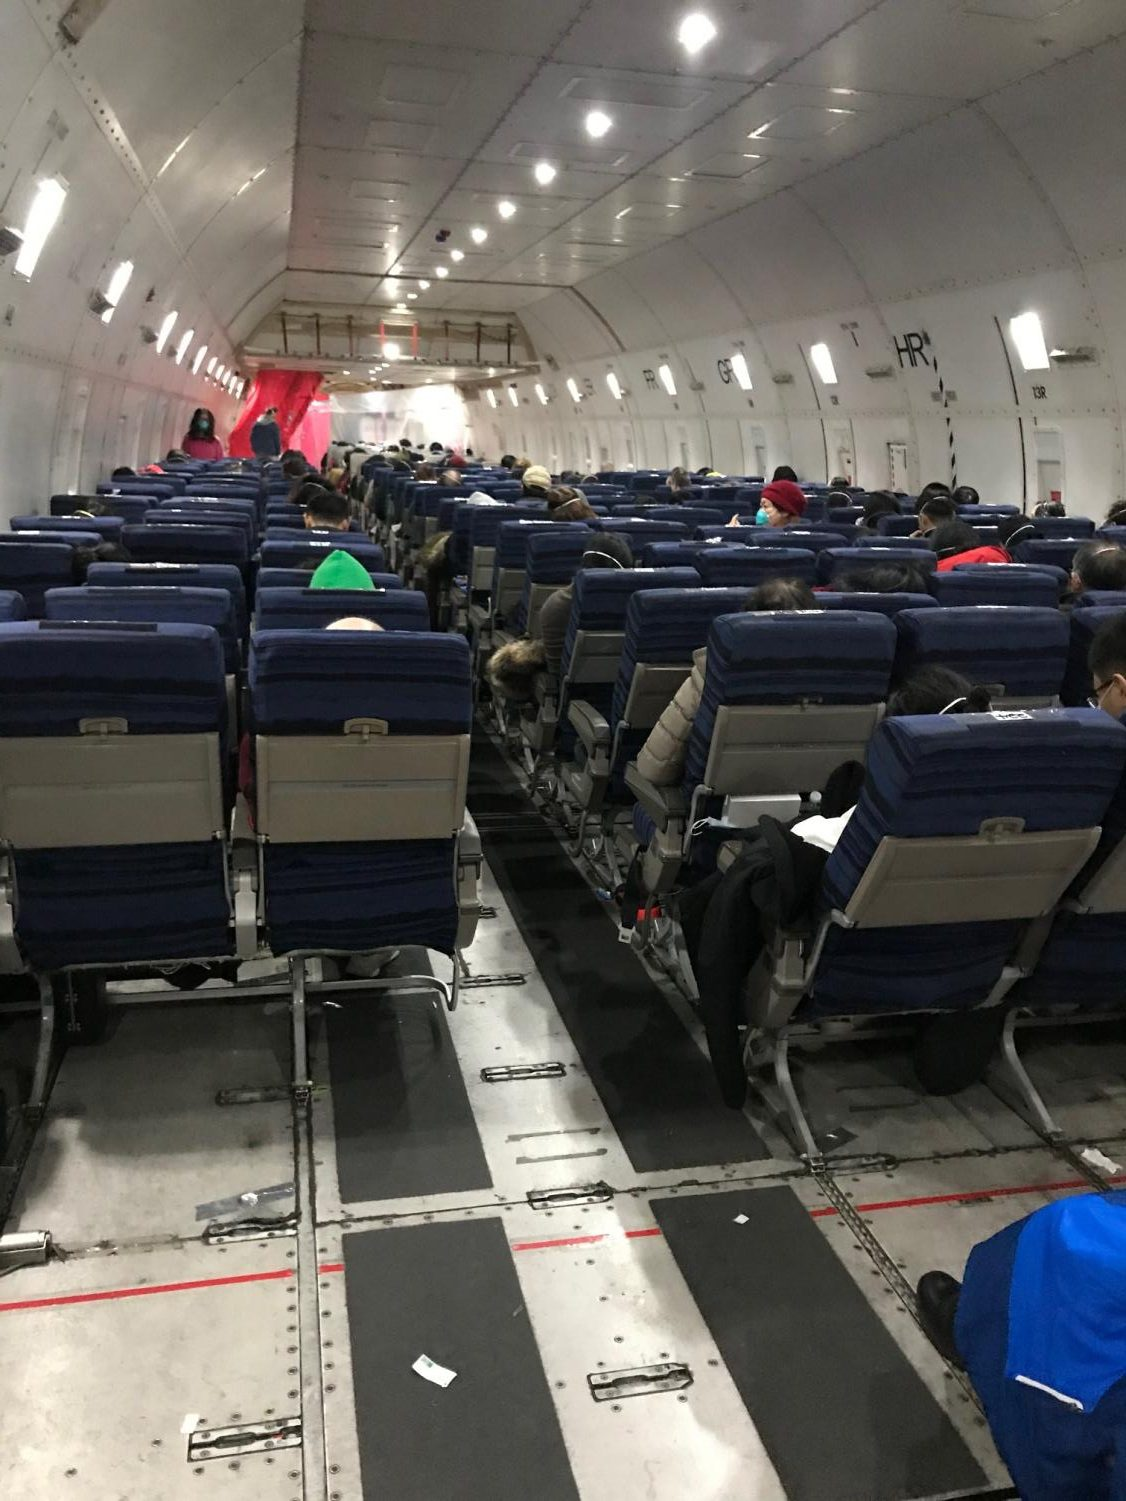 This photo, taken by JingMing Huang shows the inside of an airplane, indicating his flight back to America. Air travel has been the greatest cause of the spread of the Coronavirus due to the close proximity of people to one another and the recycling of air throughout the aircrafts.